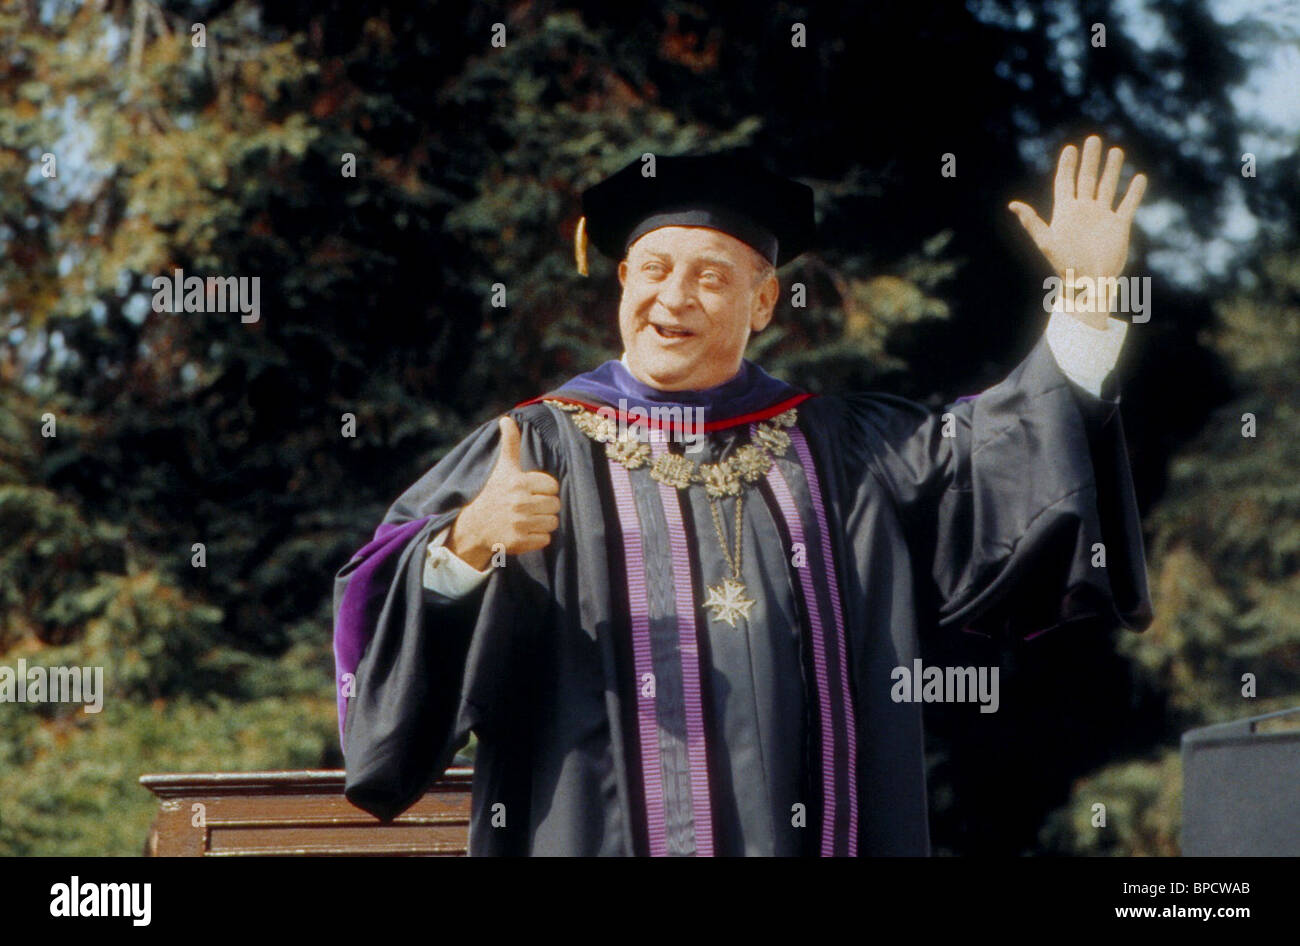 RODNEY DANGERFIELD BACK TO SCHOOL (1986 Stock Photo ...